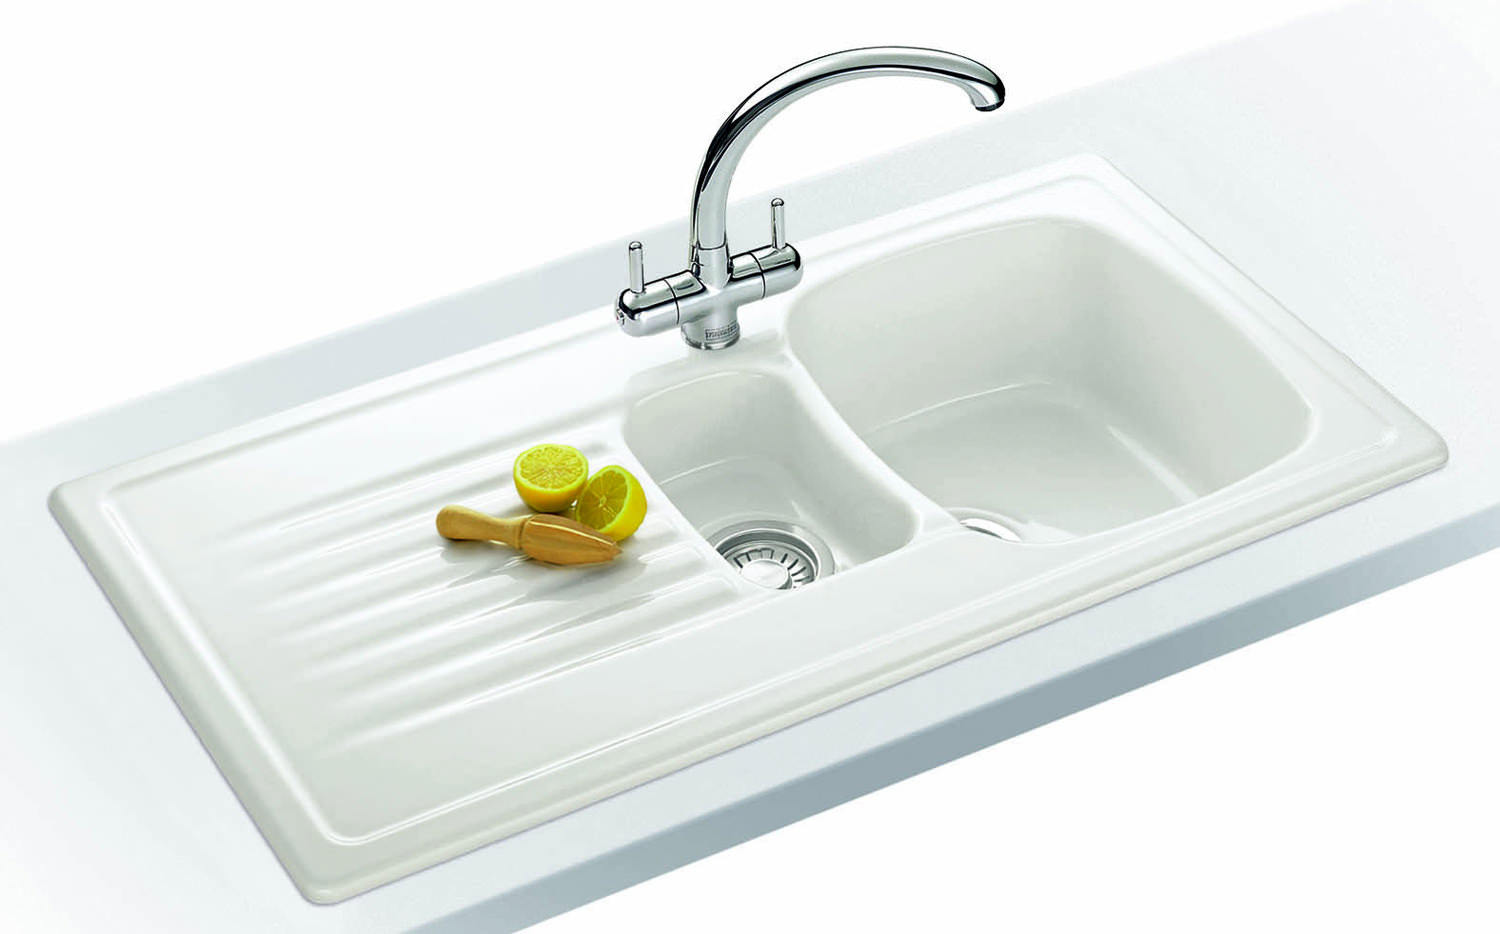 Franke Elba Propack ELK 651 White Ceramic Kitchen Sink And Tap Image